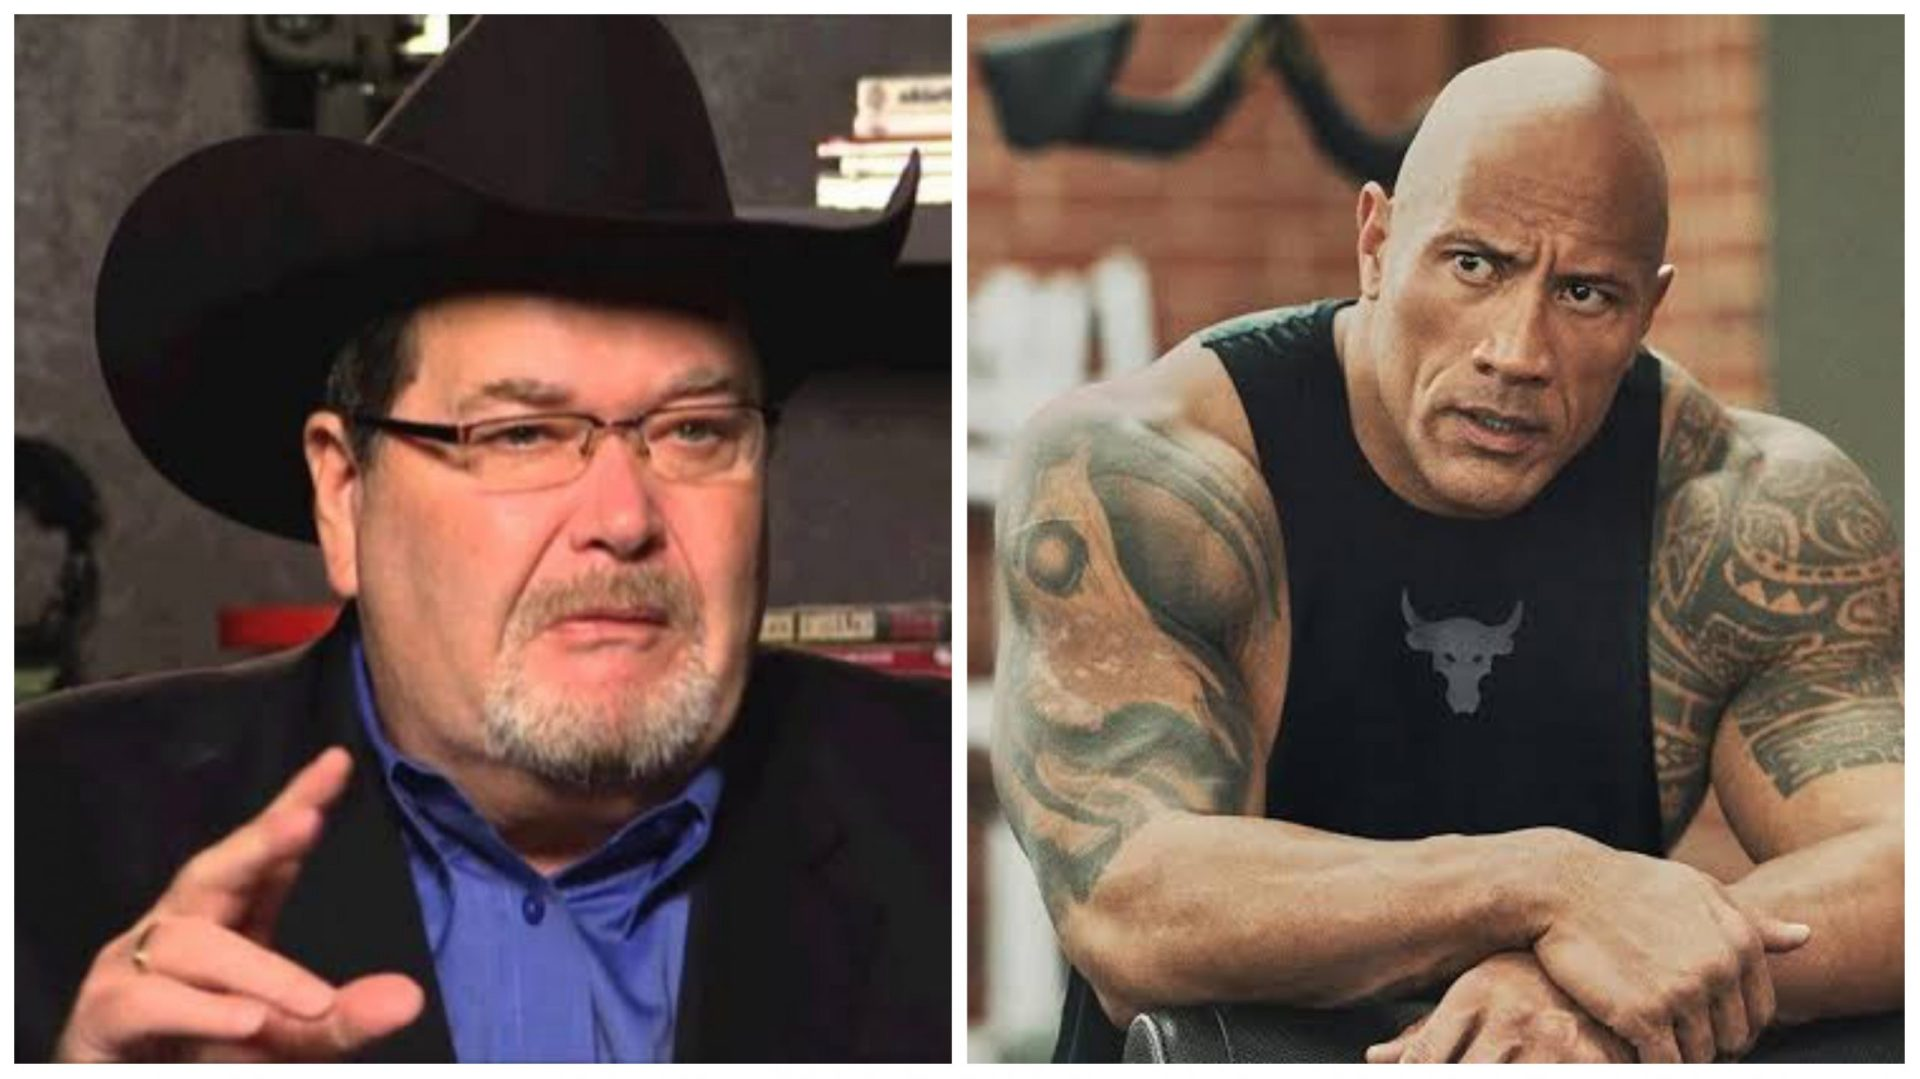 Jim Ross recalls the time he and Vince McMahon realized The Rock's potential as a Hollywood star - THE SPORTS ROOM